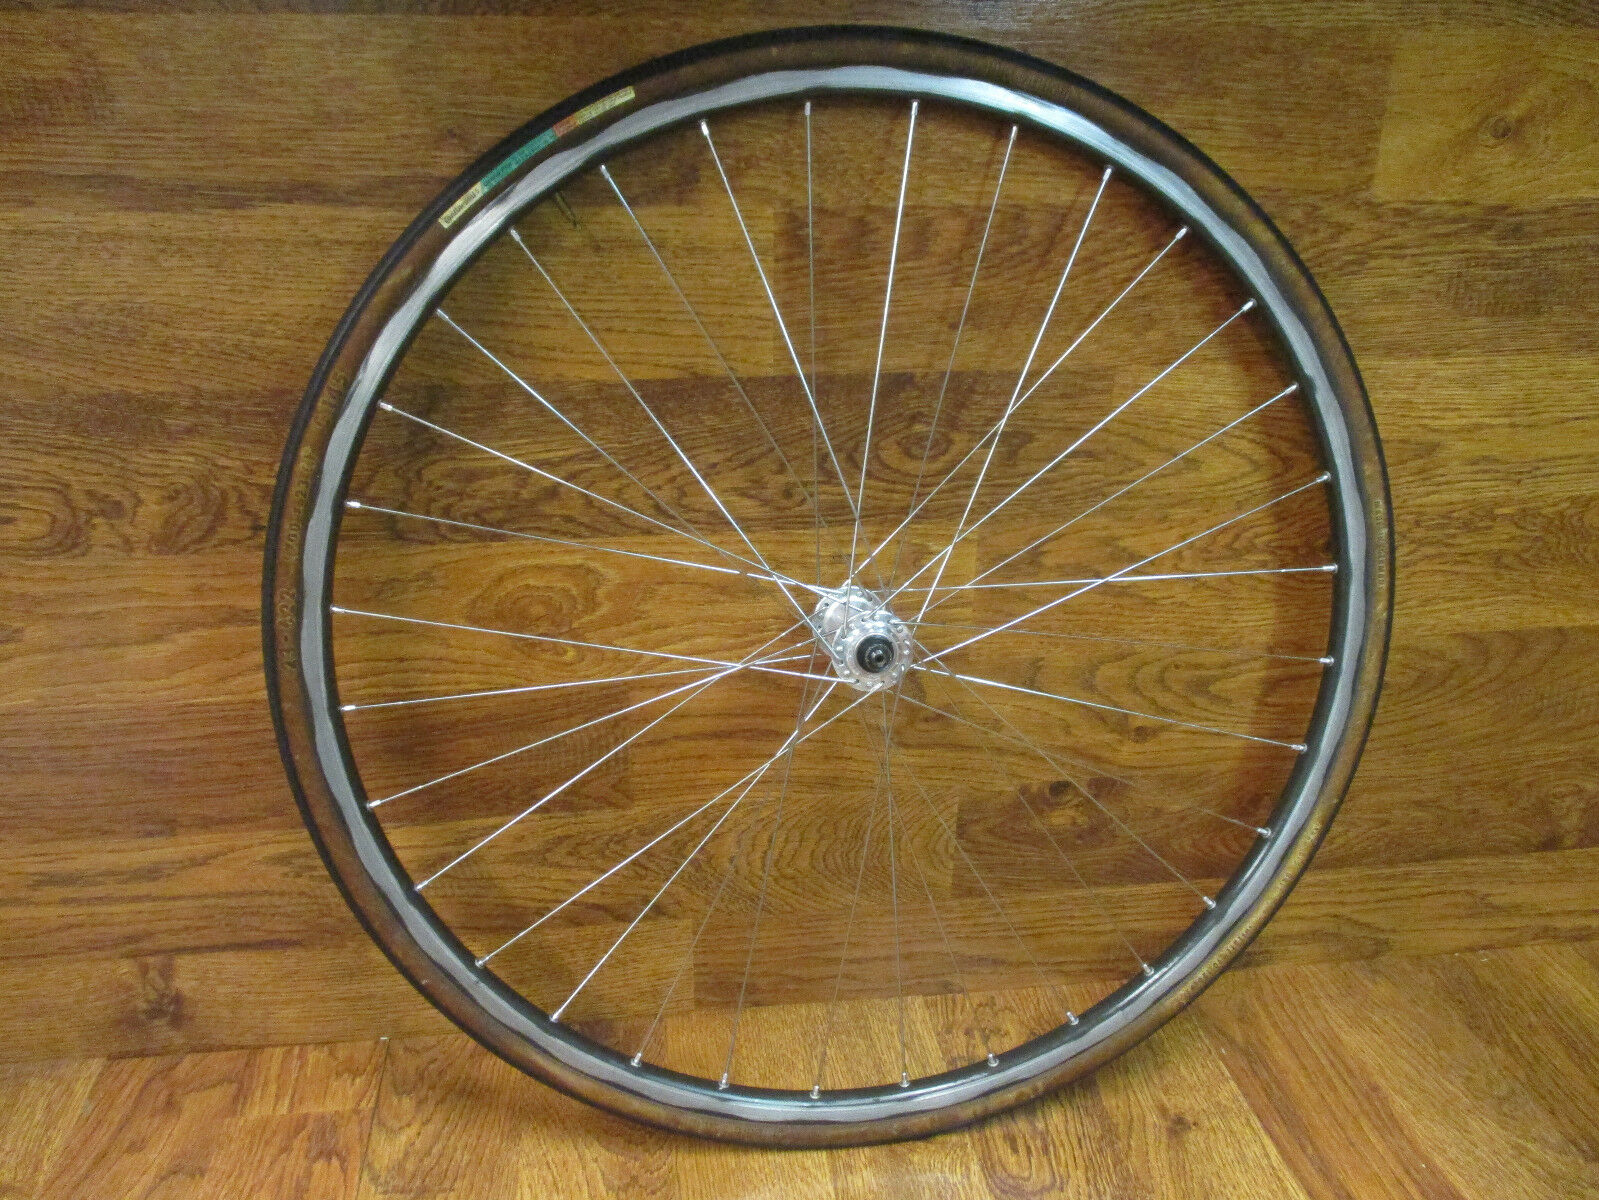 VINTAGE CAMPAGNOLO RECORD 32H MAVIC  700C CLINCHER FRONT WHEEL - BRONZE  buy best